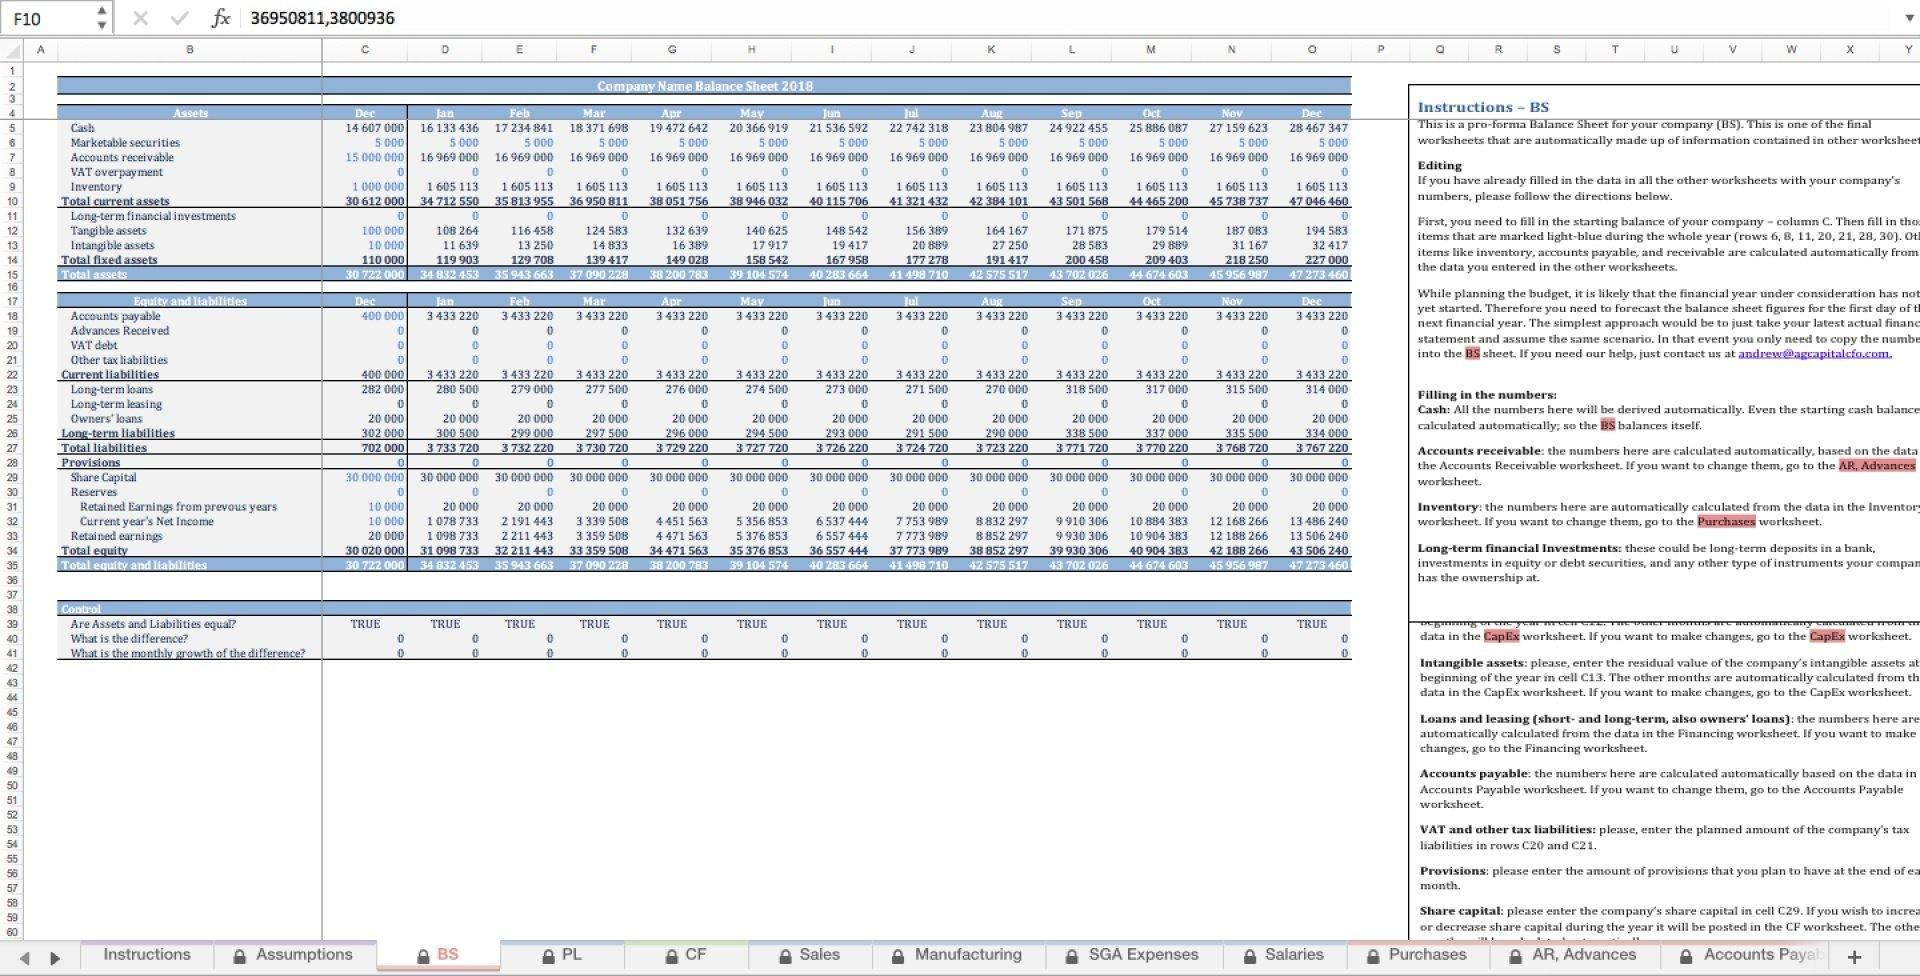 Food Manufacturing Budget Excel Template - Templarket -  Business Templates Marketplace